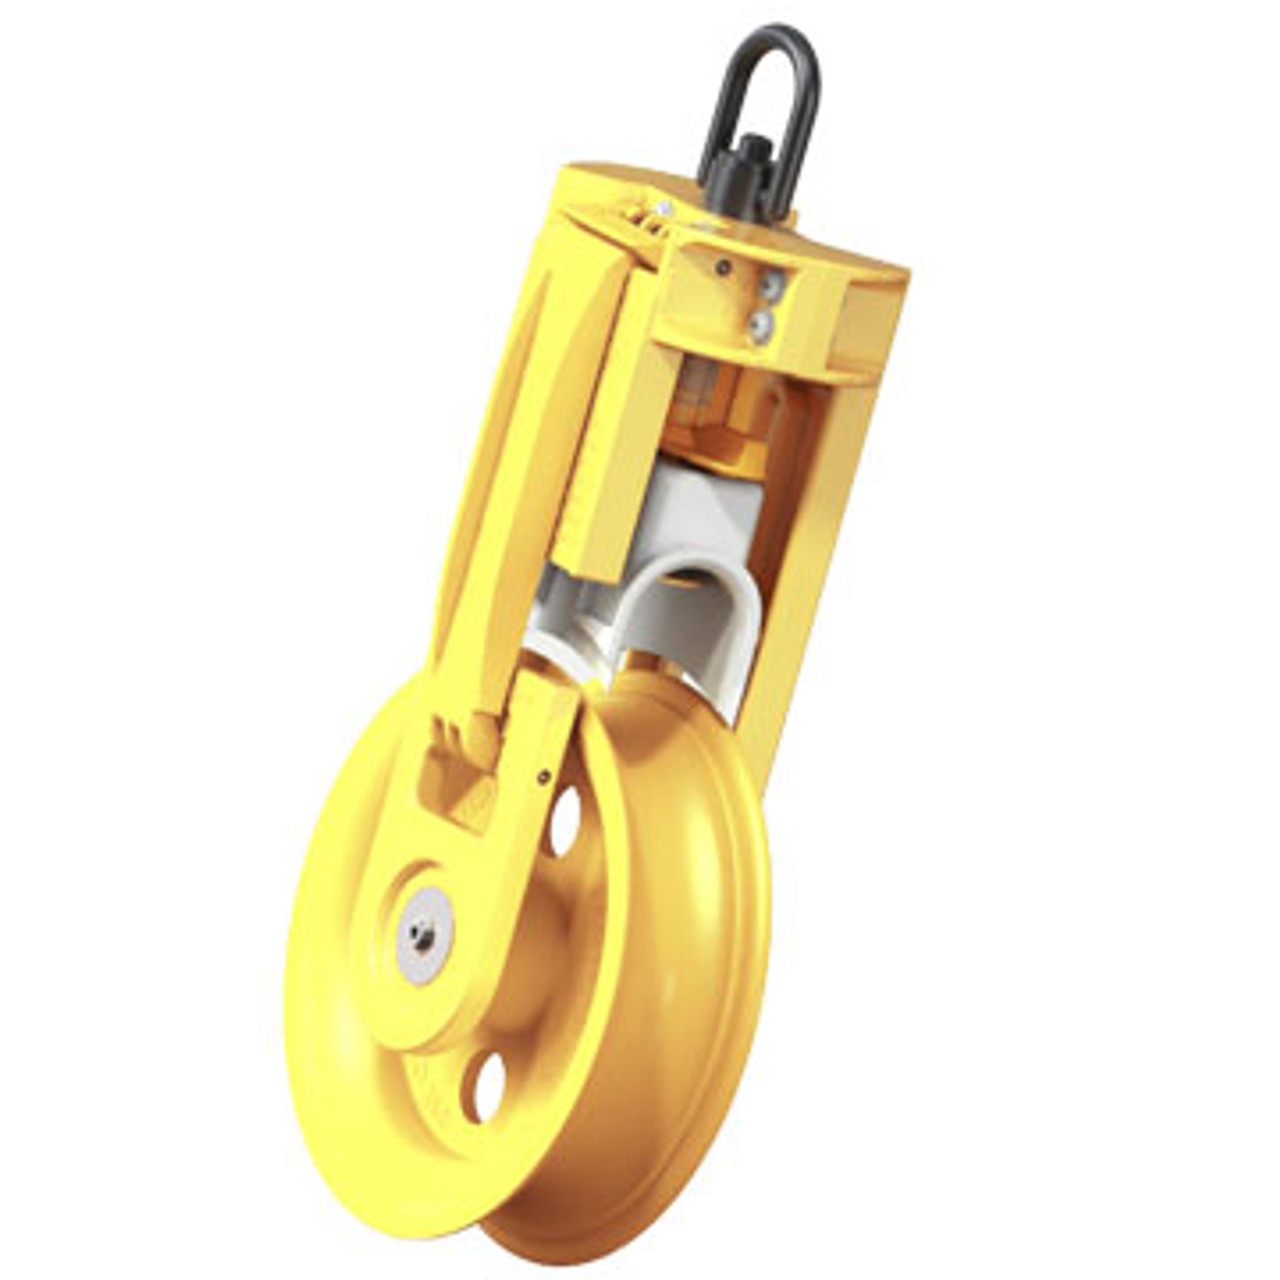 """The Jameson SHV-8 Fiber Install Sheave 8"""" model for straight pulls levels itself, strapping optional. It features a patent pending cable guard that eliminates delays caused by cable and pull tape derailing. The 2"""" wide opening allows pulling grips to pass through easily."""